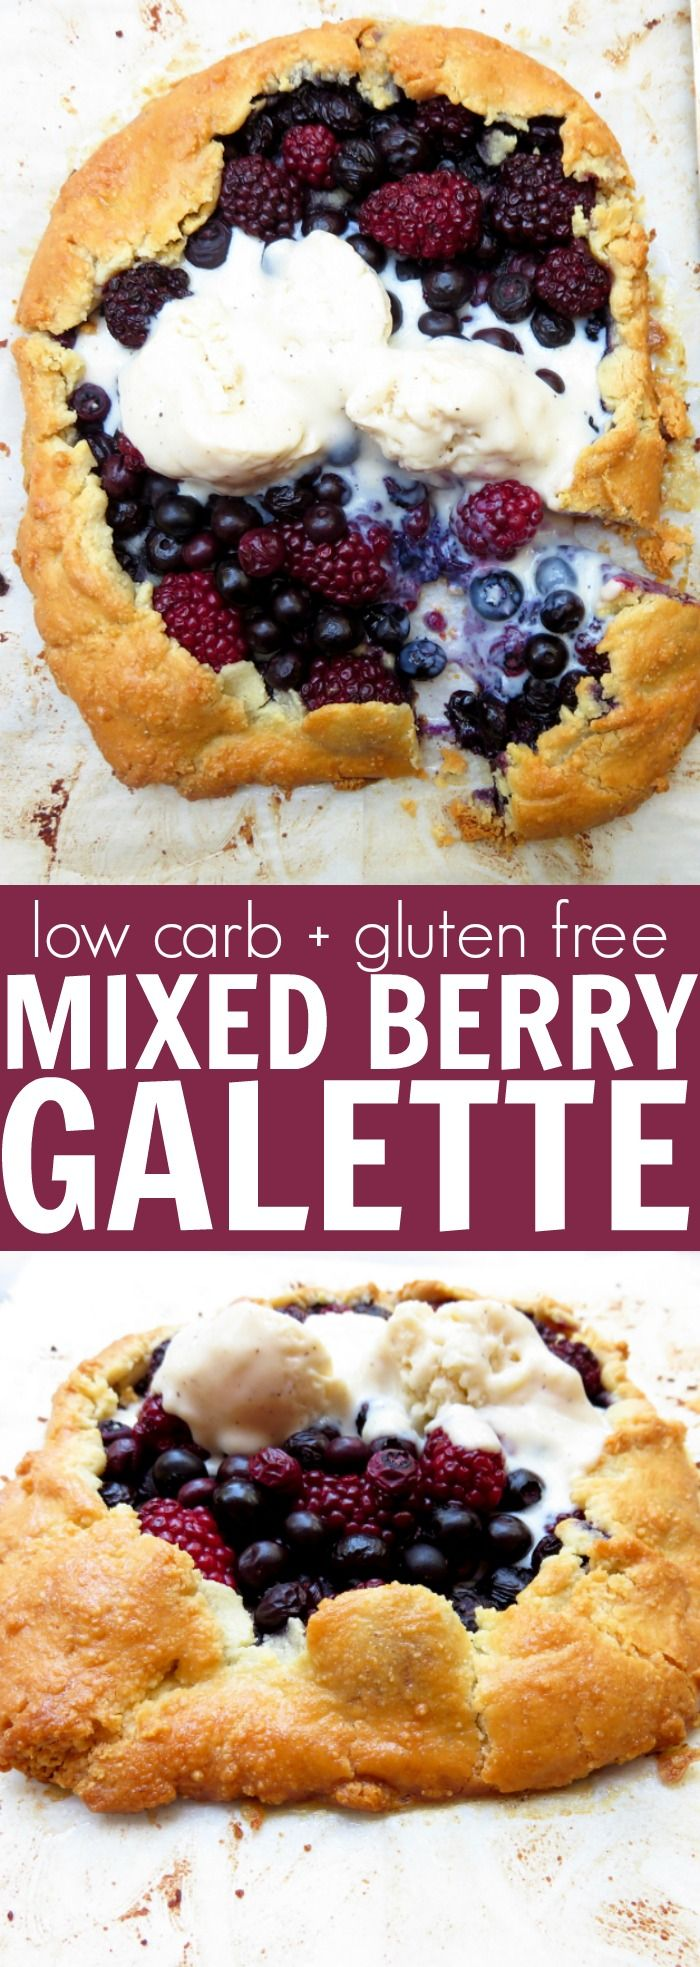 Really fun and summery low carb + gluten free mixed Barry Galette! I love how easy and laid back this is! Throw a scoop of ice cream on top and enjoy!! thetoastedpinenut.com